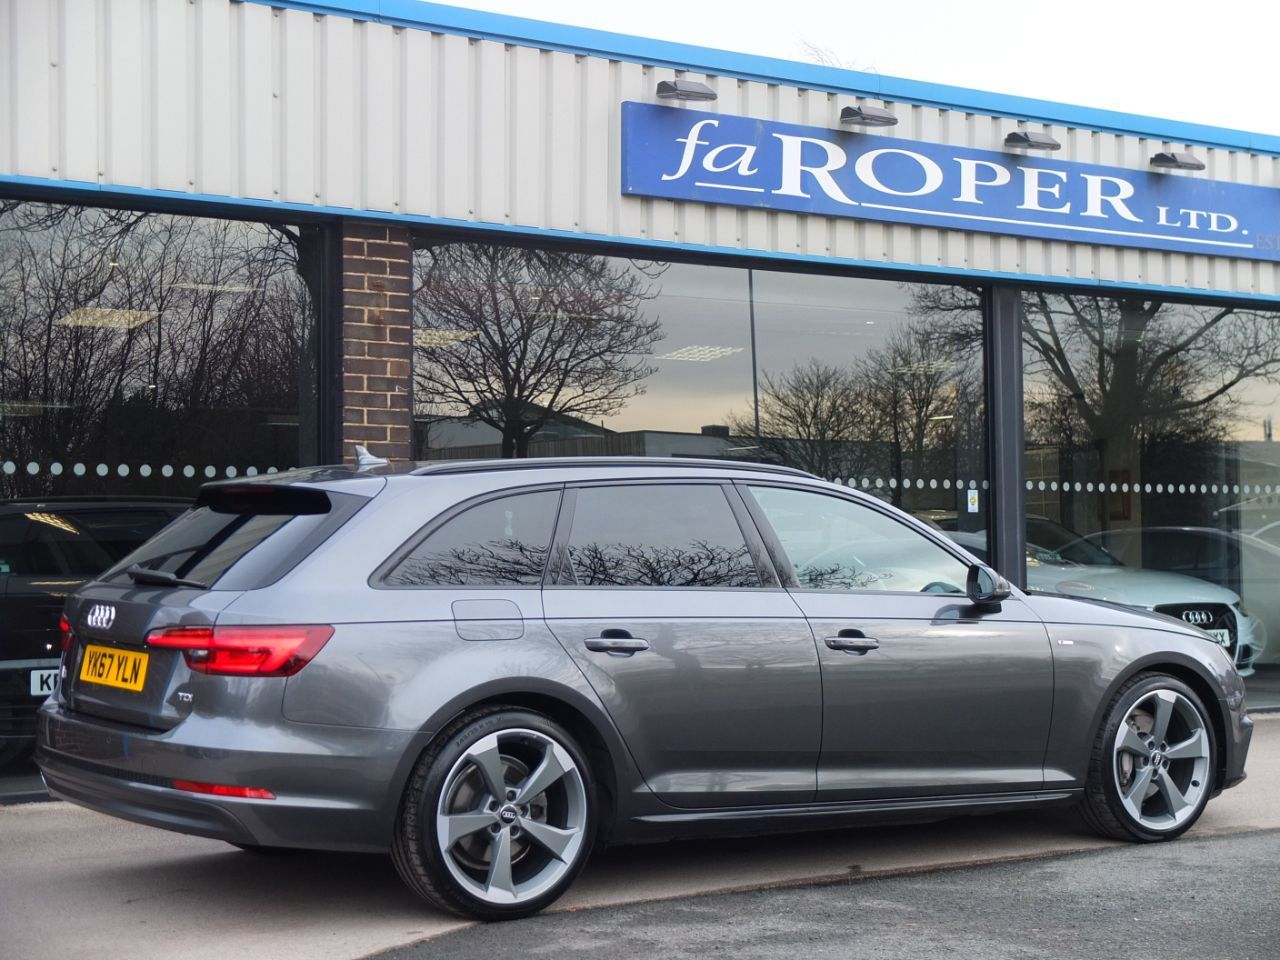 Audi A4 Avant 2.0 TDI S Line Black Edition S tronic 190ps Estate Diesel Daytona Grey Metallic